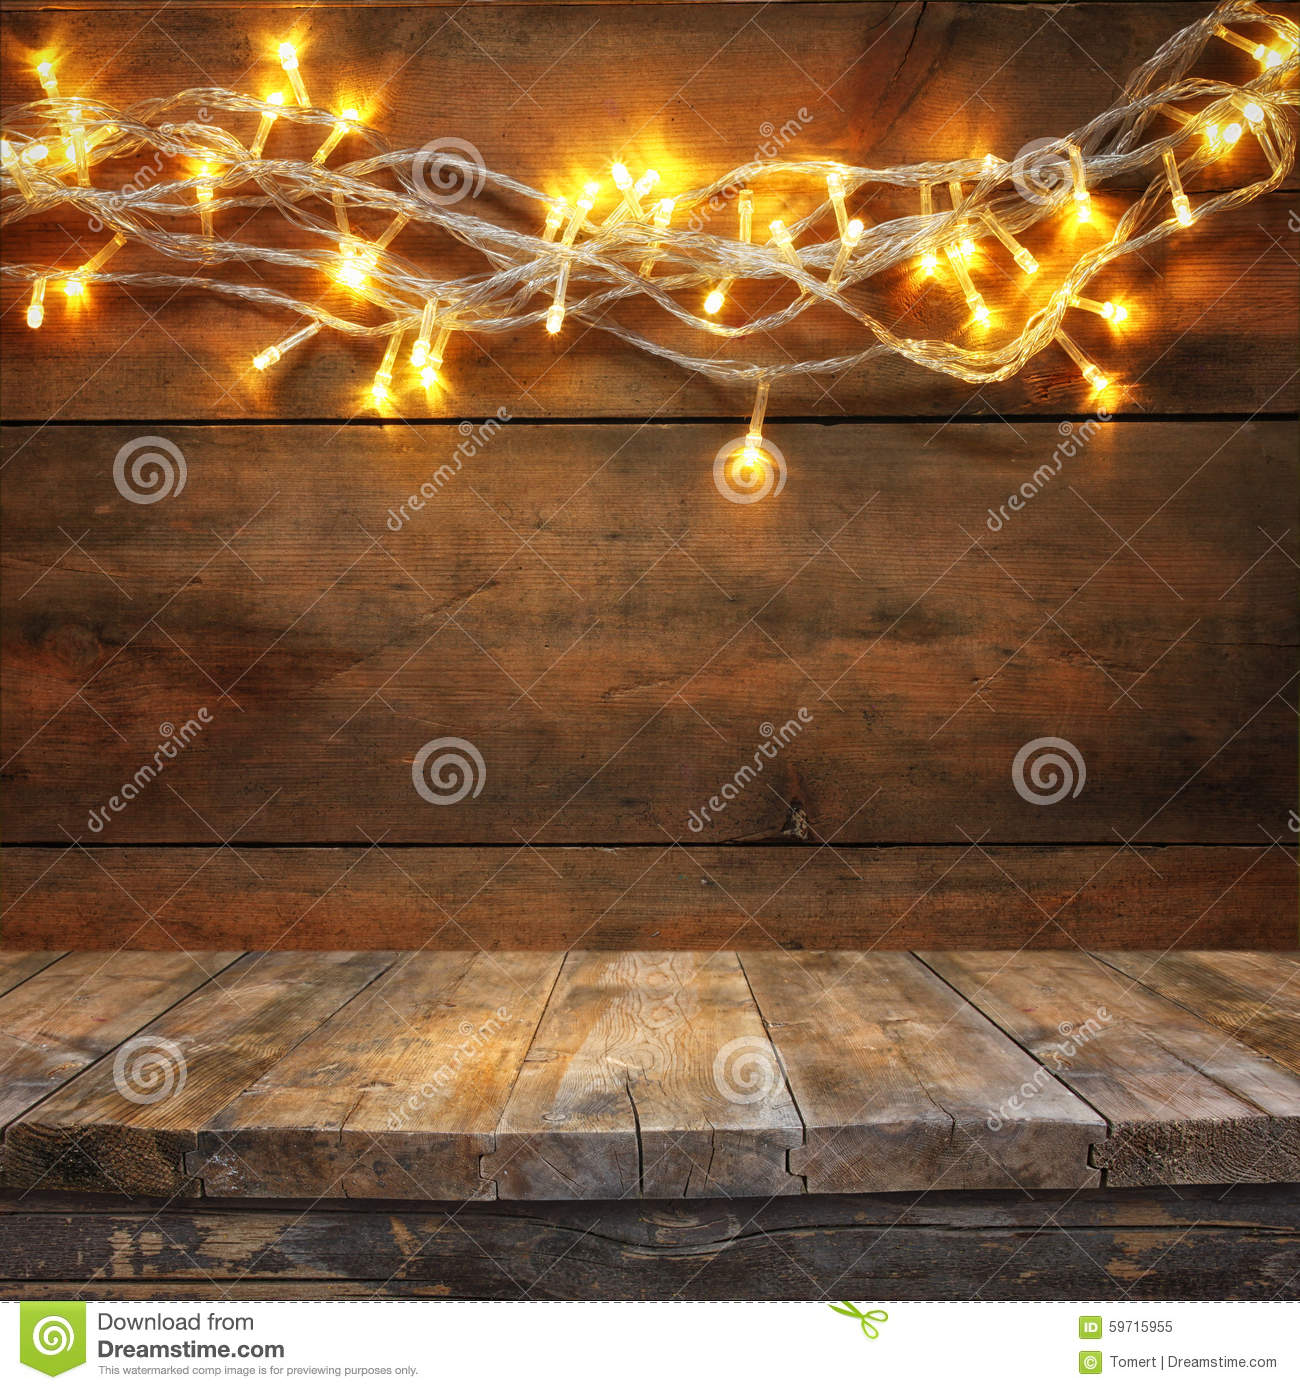 Download Wood Board Table In Front Of Christmas Warm Gold Garland Lights On Wooden Rustic Background. Filtered Image. Selective Focus Stock Image - Image of bright, abstract: 59715955